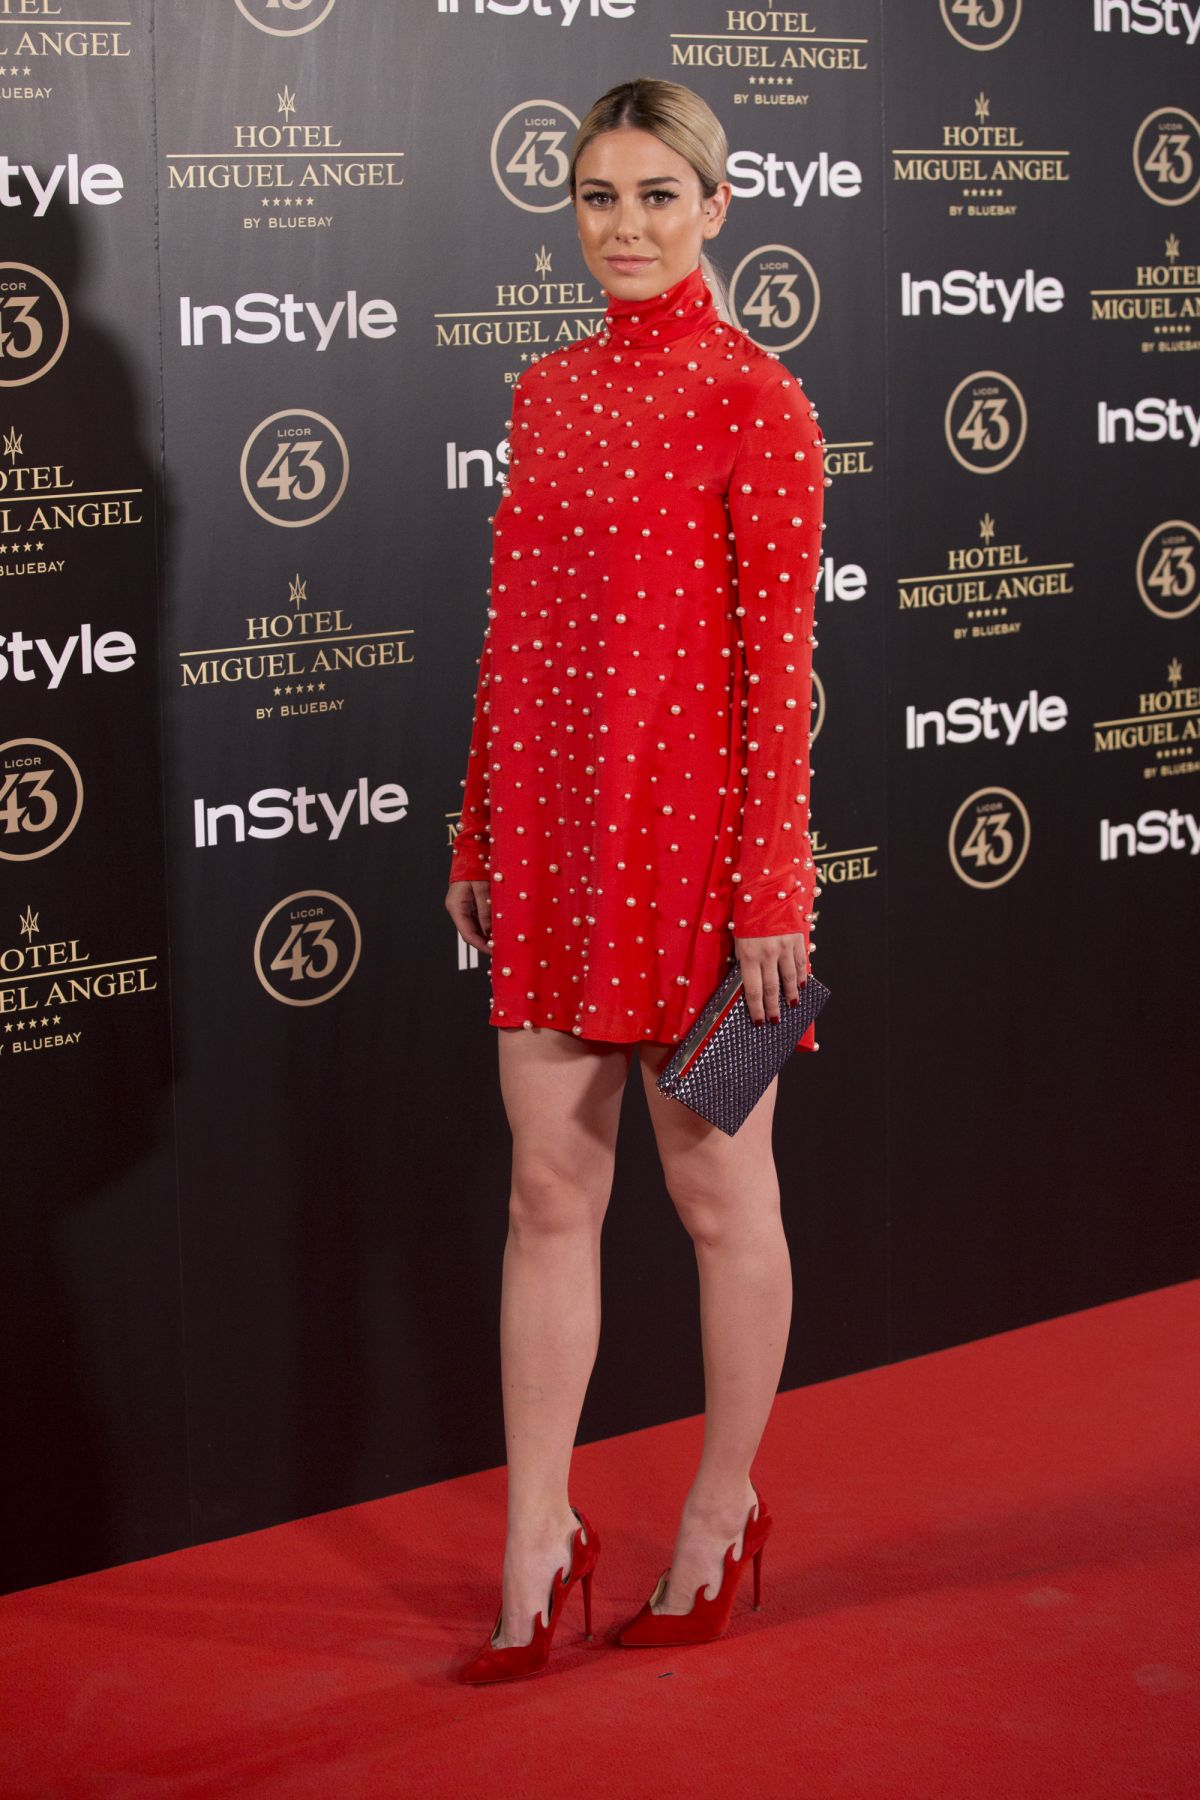 blanca suarez at miguel angel garden party photocall in madrid 05